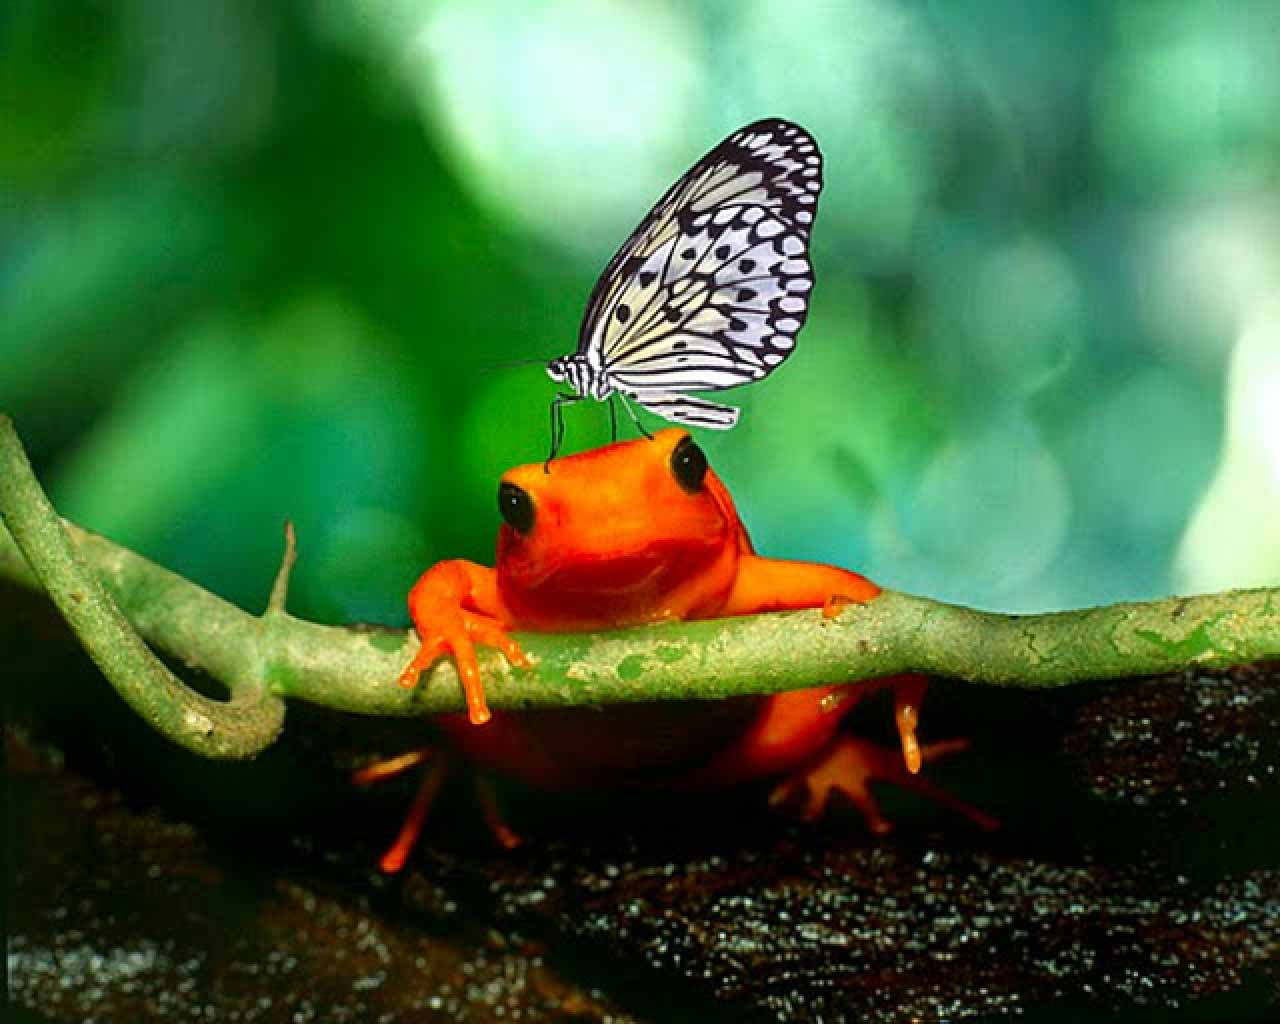 Hd wallpapers frog wallpapers - Frog cartoon wallpaper ...